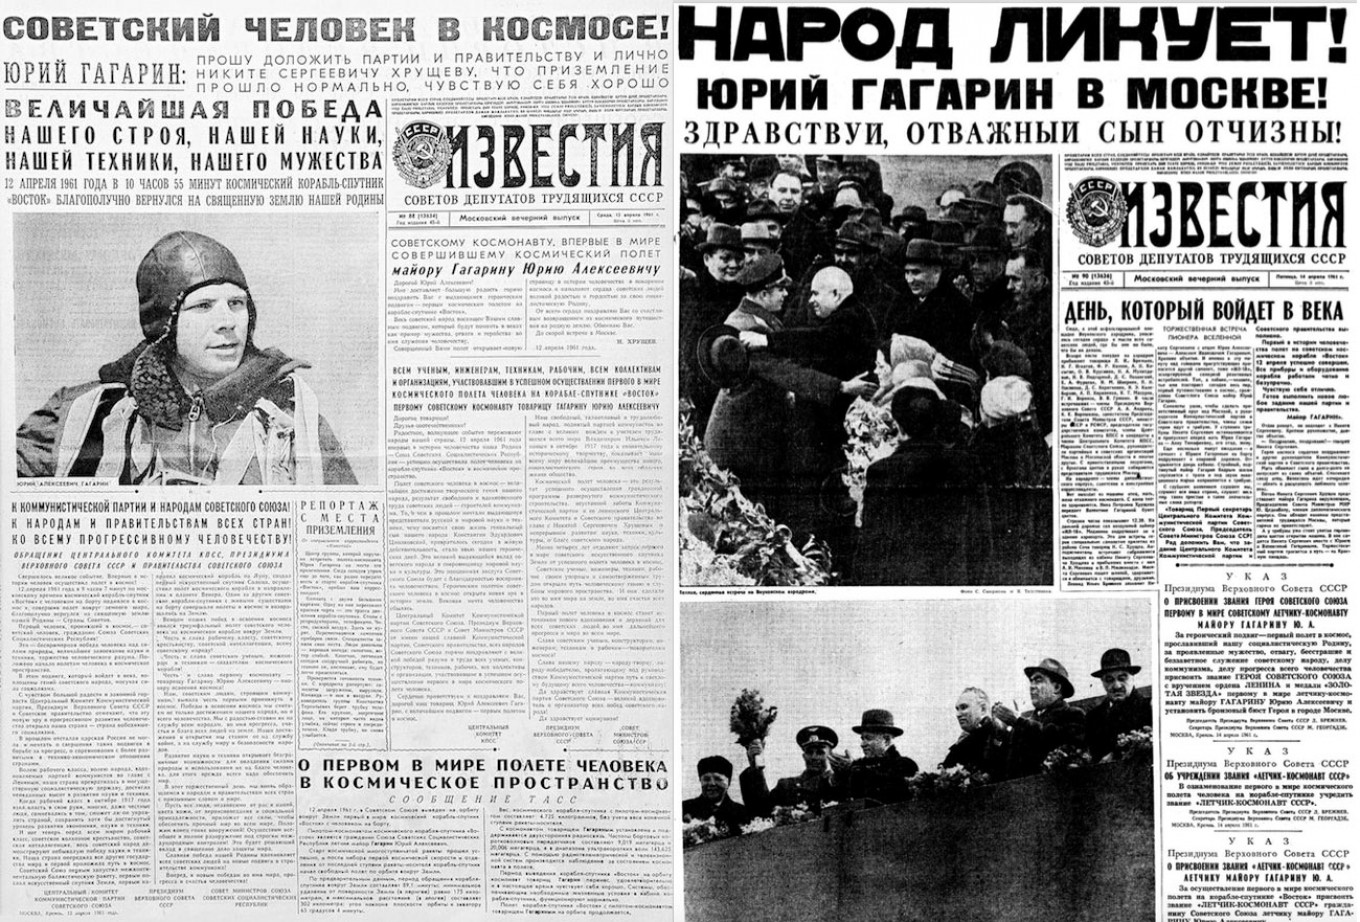 """Apr. 12, 1961. Russia celebrates Yuri Gagarin's space flight. """"The greatest victory of our system, our science, our technology and our bravery."""" Izvestia Archive"""